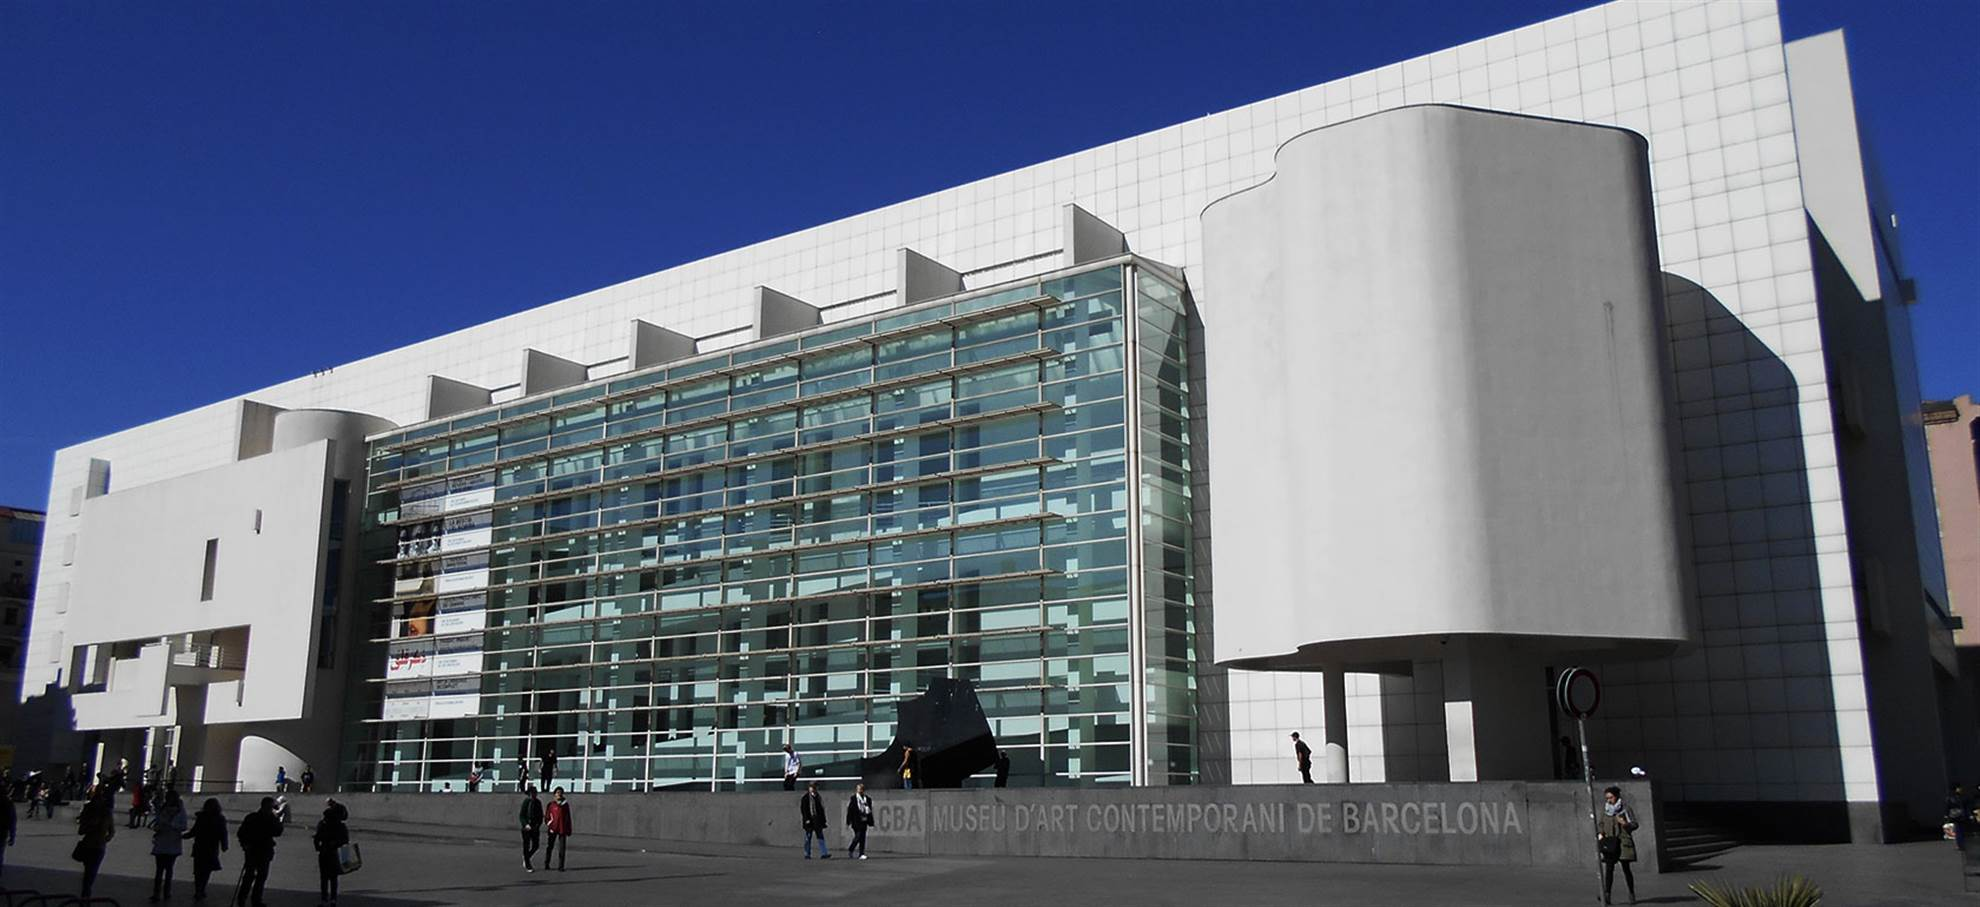 Barcelona Museum of Contemporary Art Tickets